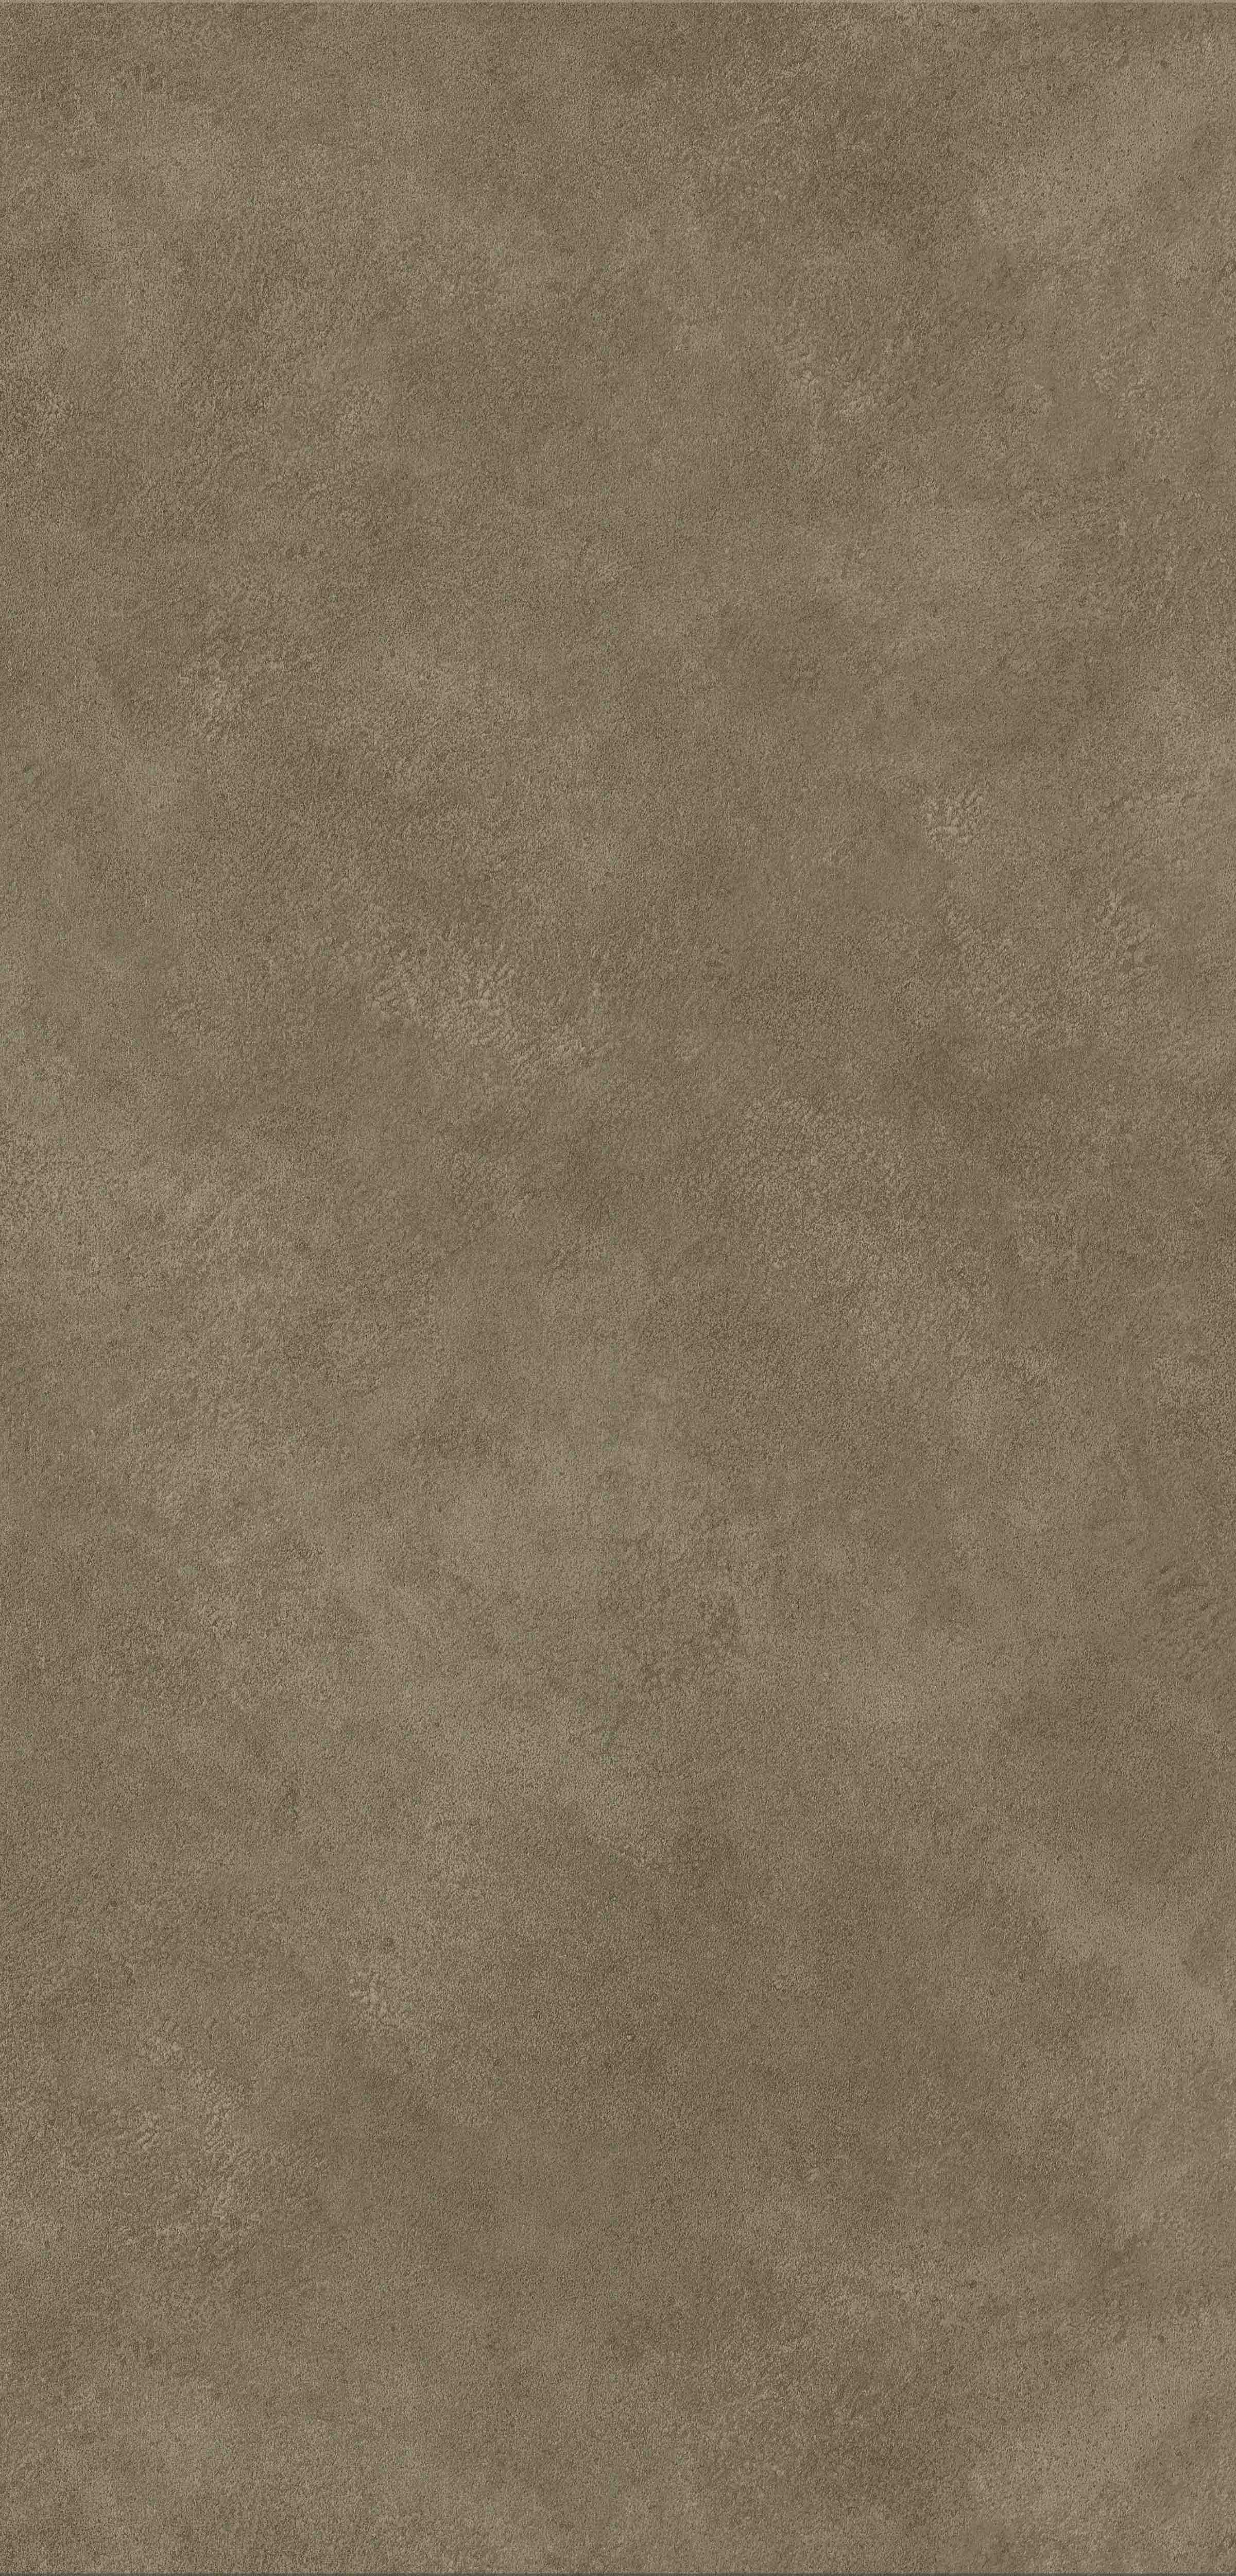 Rappórt | Seasoned Concrete, 2969 | Paragon Carpet Tiles | Commercial Carpet Tiles